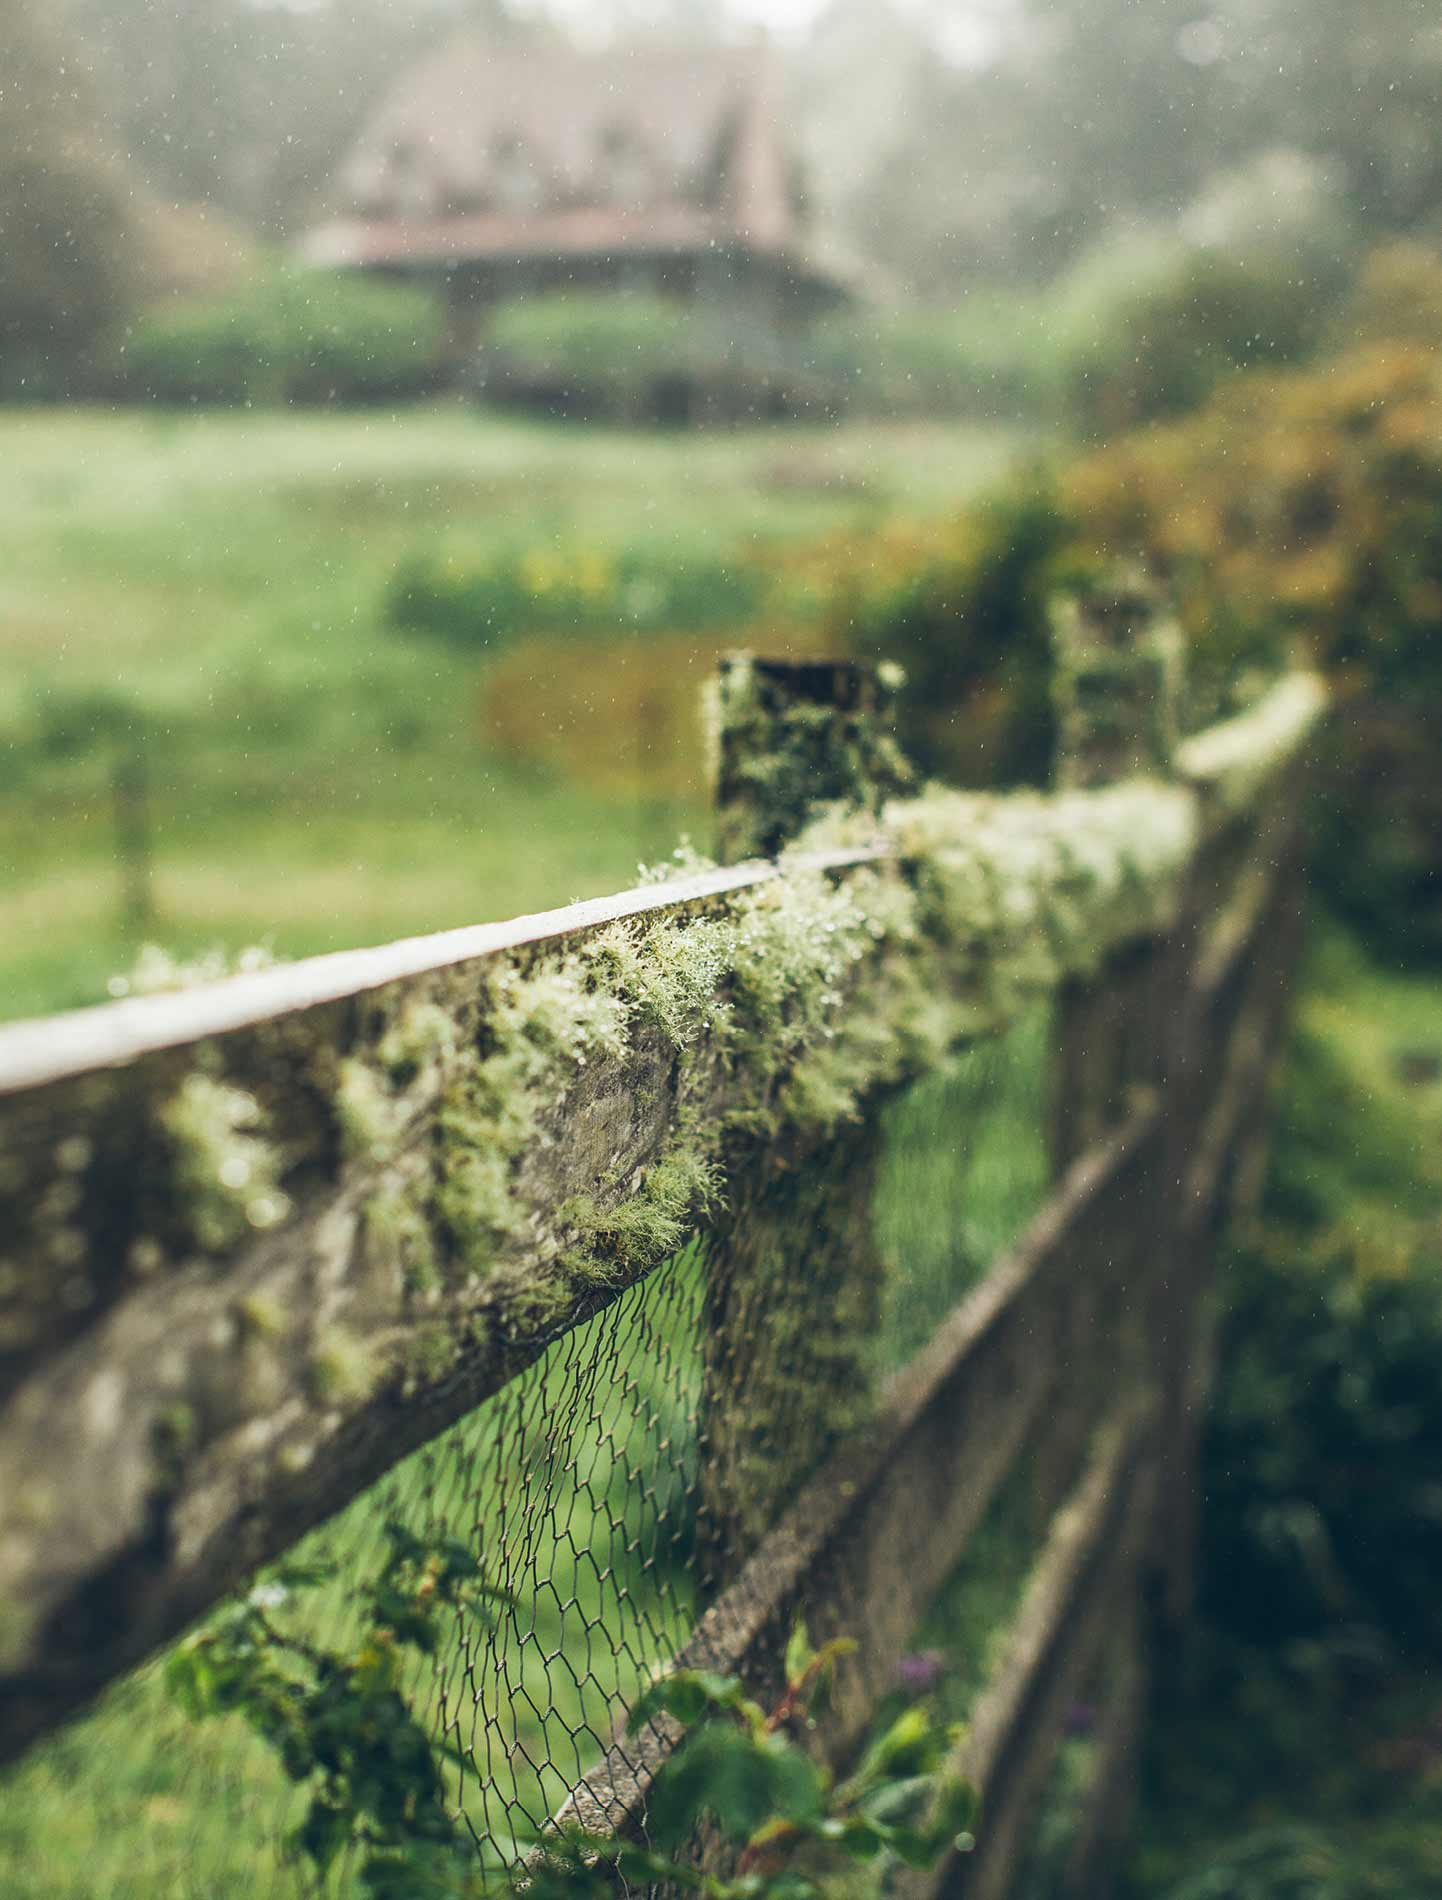 A mossy fence.